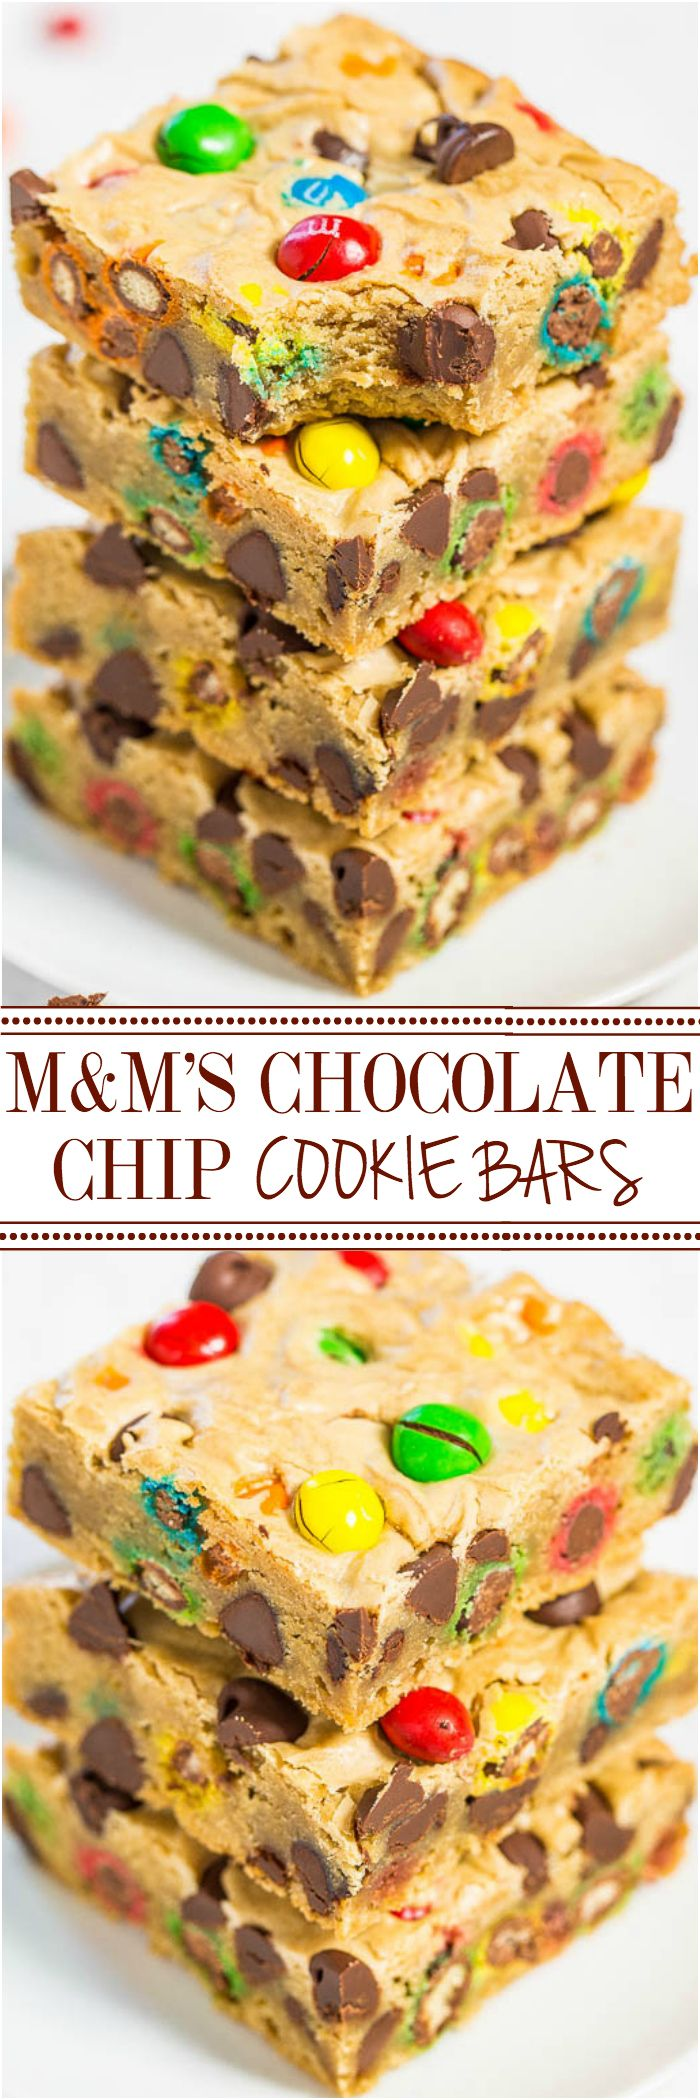 Pinterest: @ndeyepins • M&M'S Chocolate Chip Cookie Bars - Soft buttery bars loaded with M&M'S and chocolate chips are a guaranteed hit!! Fast, easy, foolproof, no mixer recipe that's so much simpler than making cookies!! // Barres de cookie aux pépites de chocolat et au M&M'S - Beurre mou avec des M&M'S et chargé de pépites de chocolat --> succès garanti